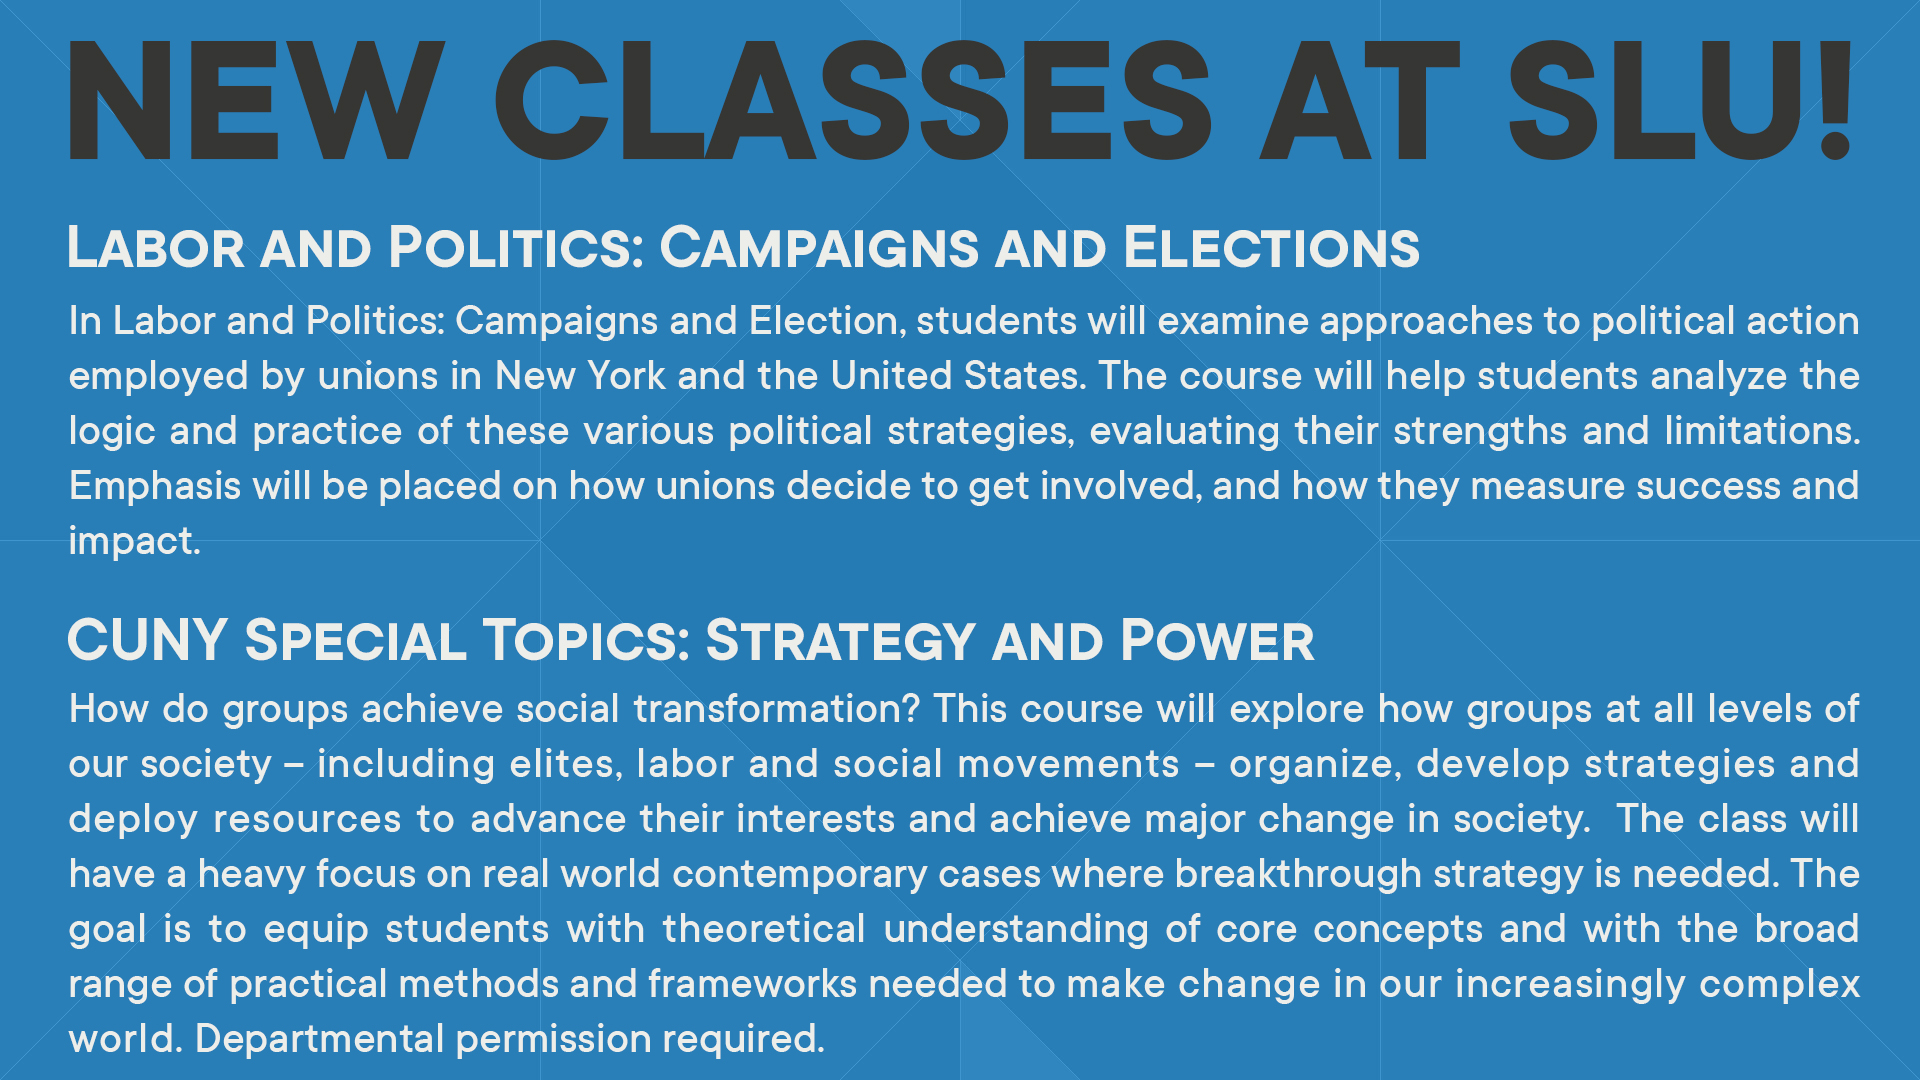 In Labor and Politics: Campaigns and Election, students will examine approaches to political action employed by unions in New York and the United States. The course will help students analyze the logic and practice of these various political strategies, evaluating their strengths and limitations. Emphasis will be placed on how unions decide to get involved, and how they measure success and impact.